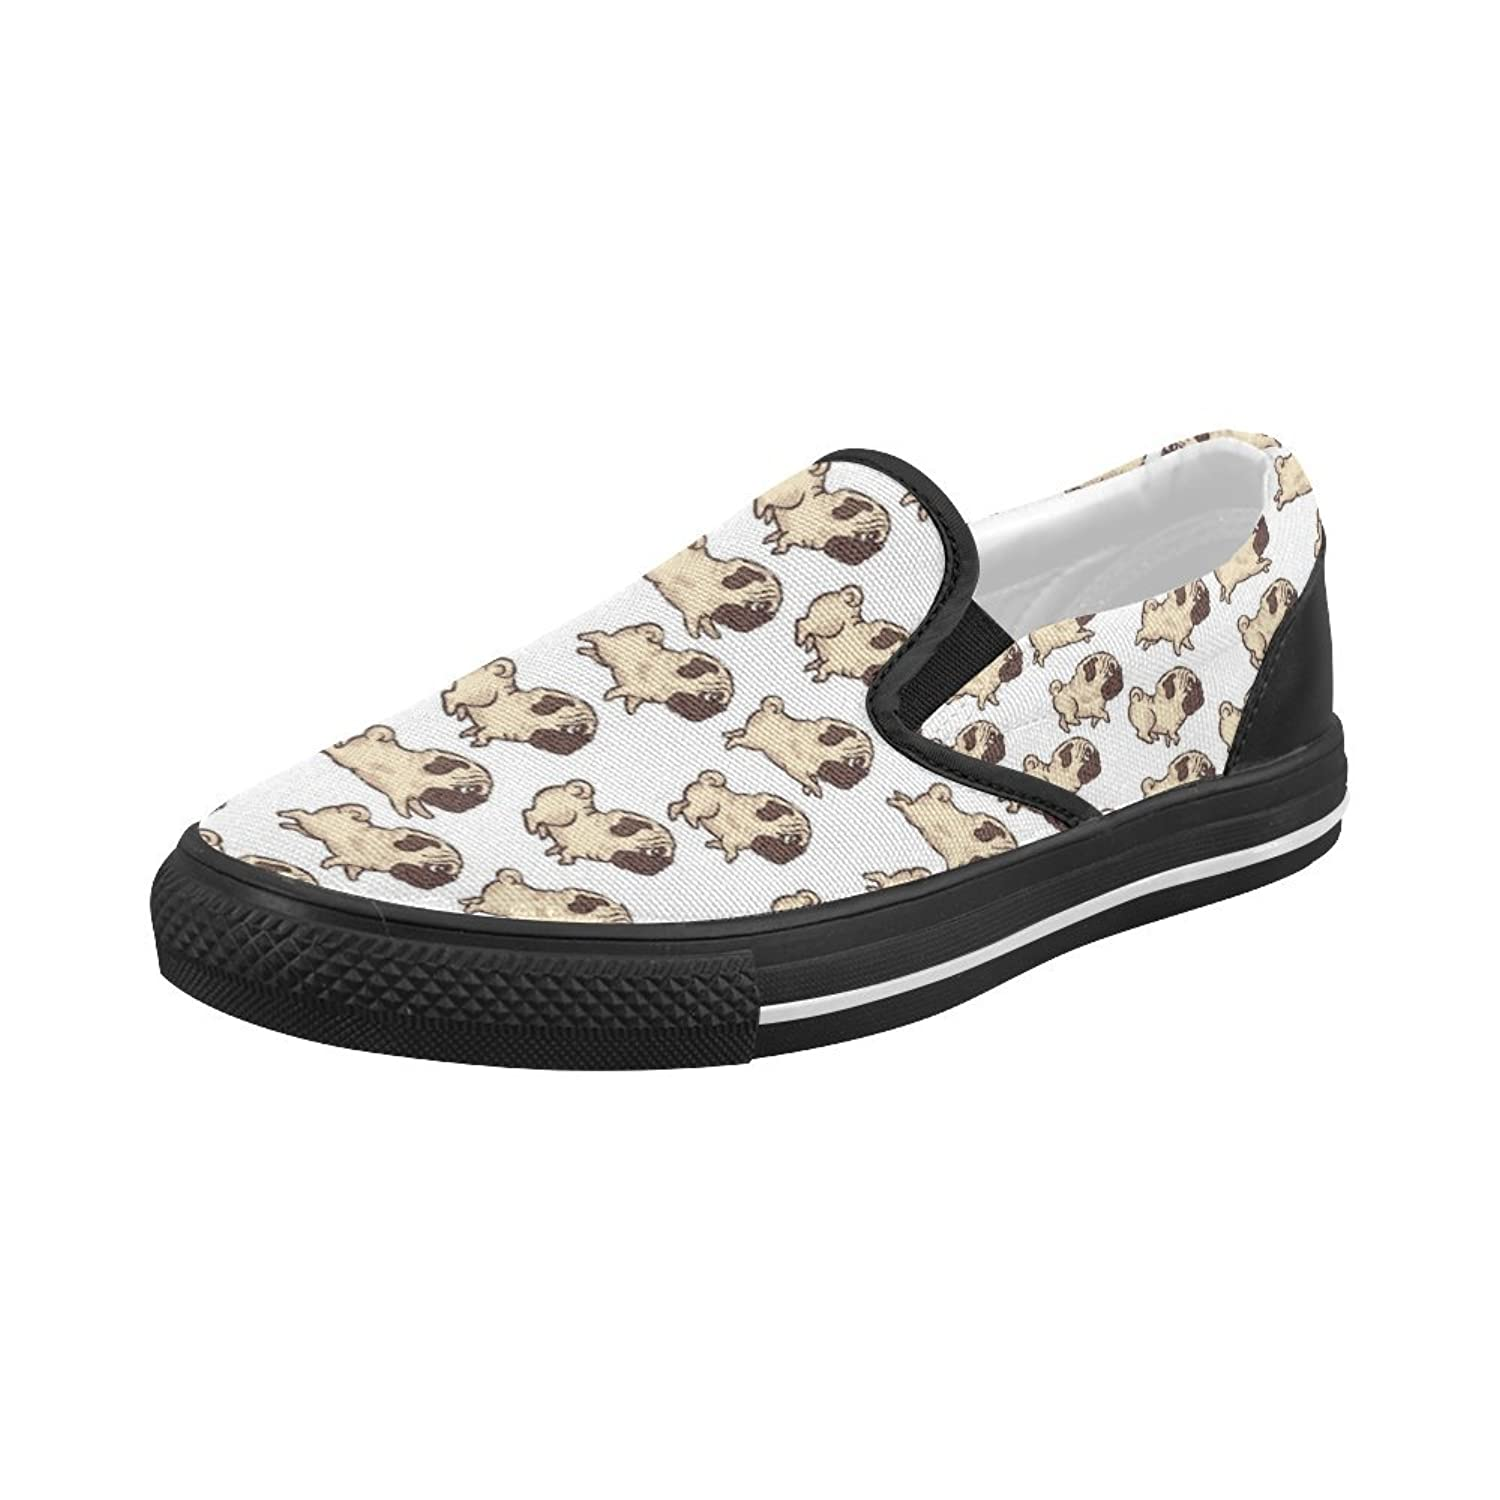 Shoes Run Pugs Slip-on Canvas Loafer For Women